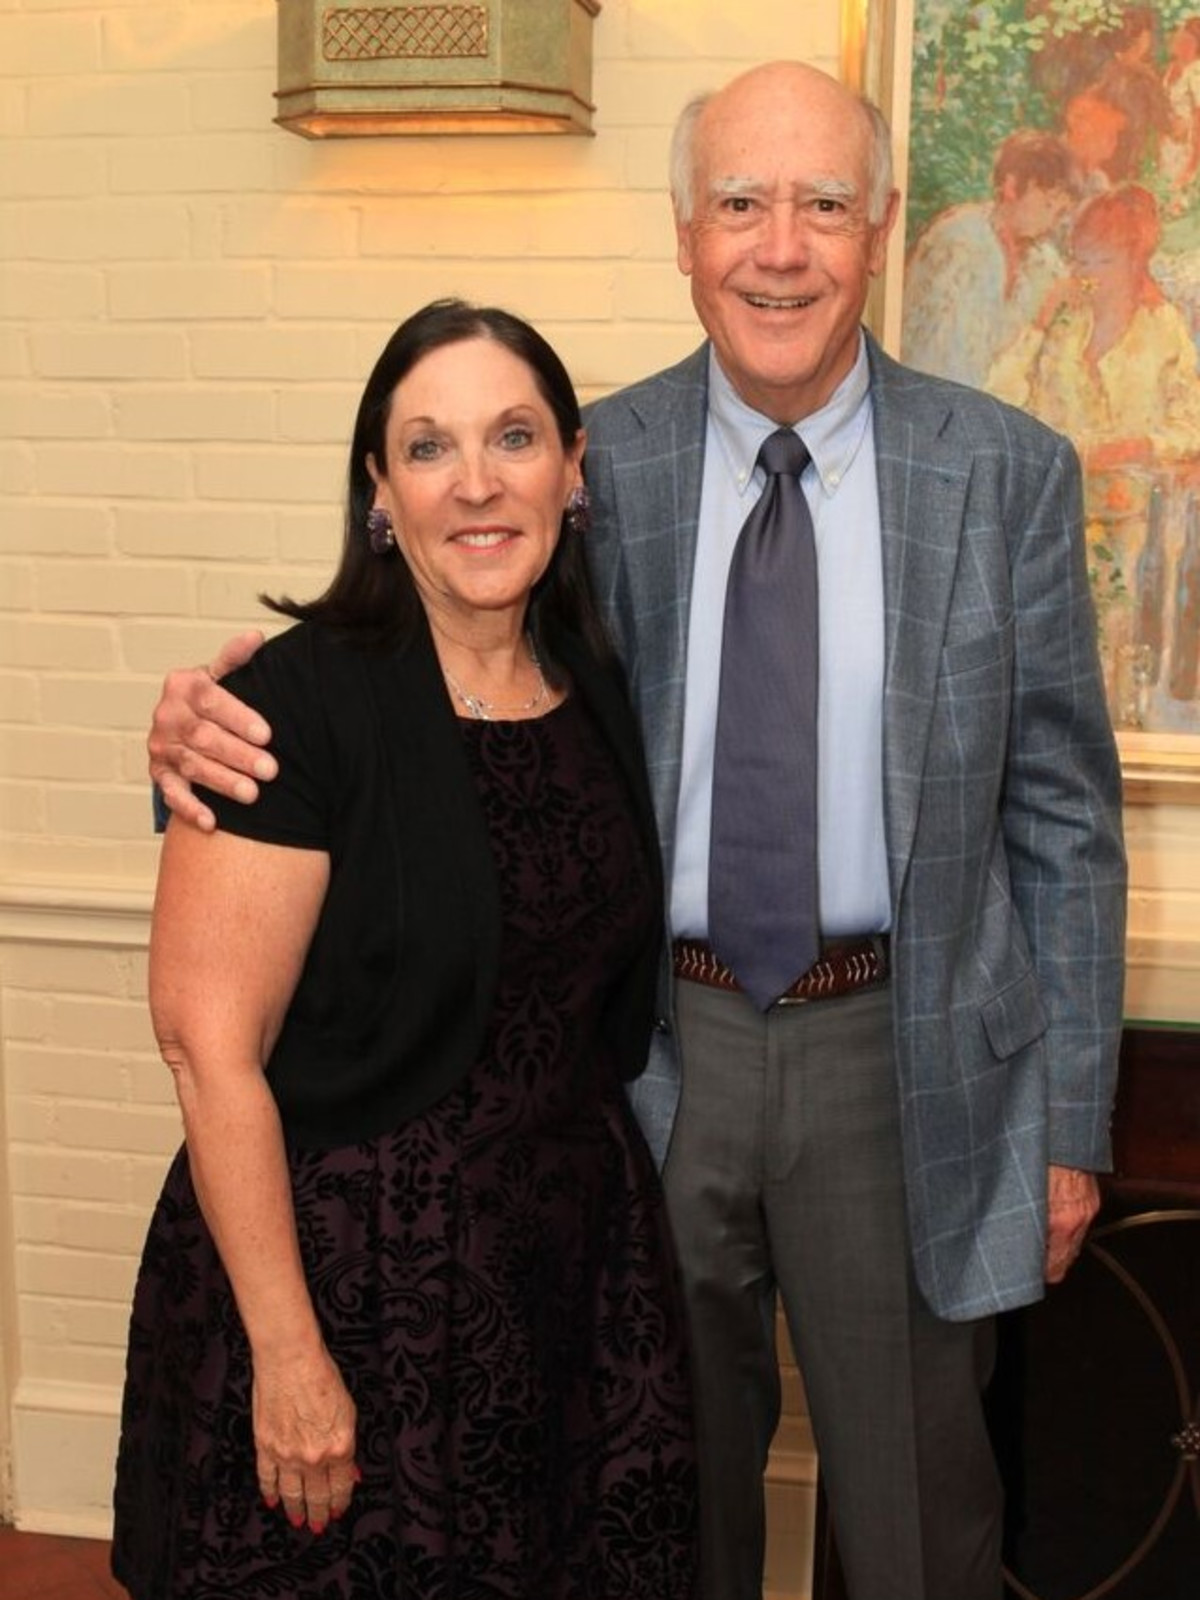 PCHPS luncheon 2018, Venise and Larry Stuart